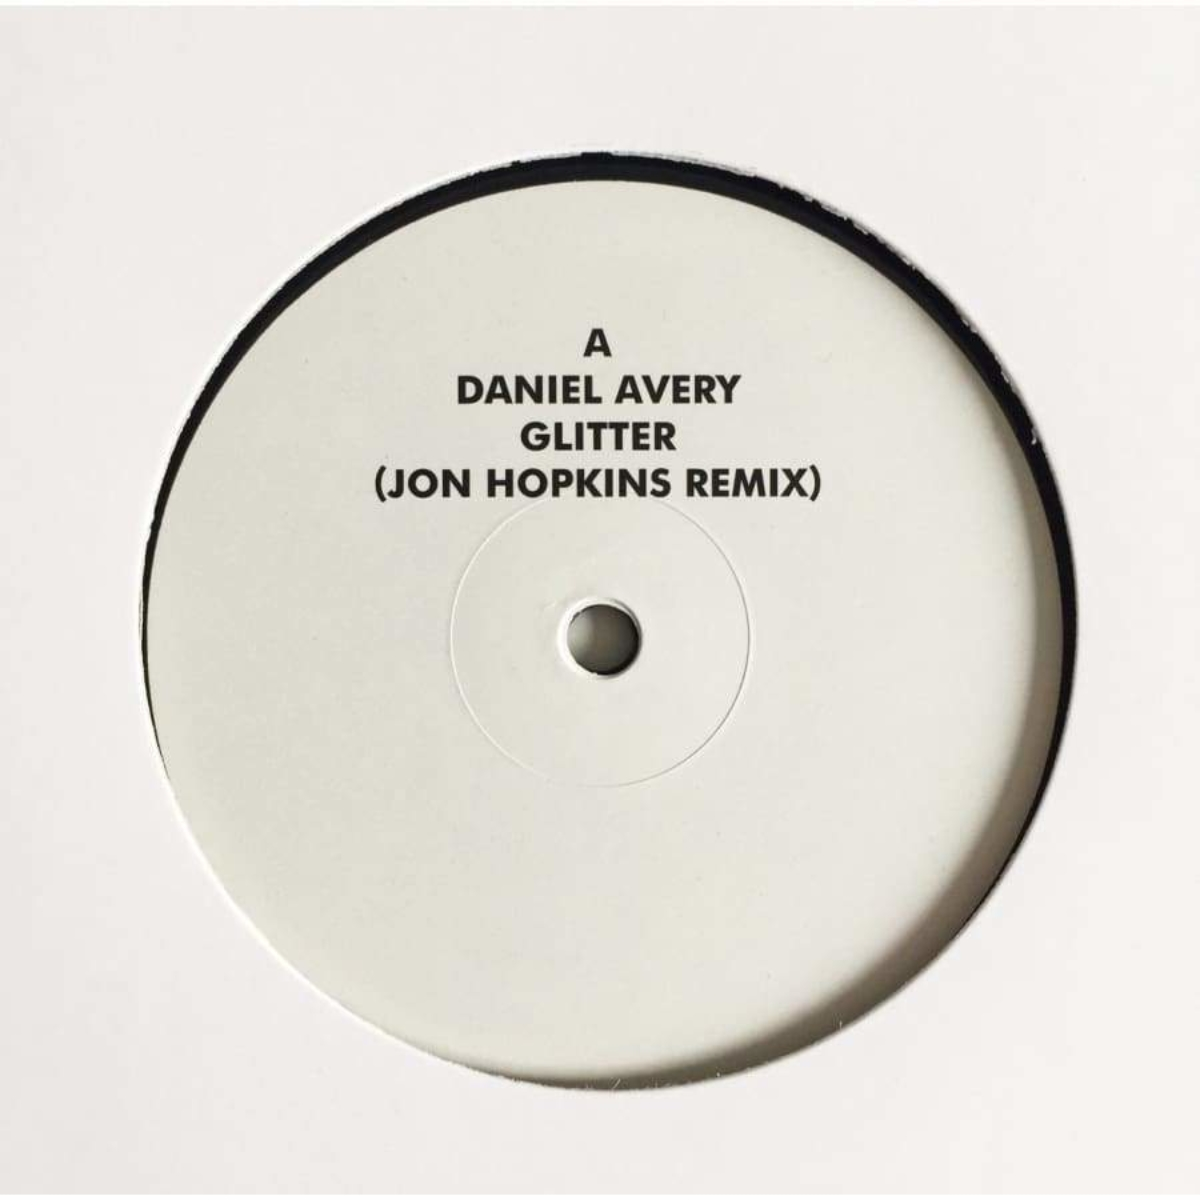 Daniel Avery and Jon Hopkins trade remixes